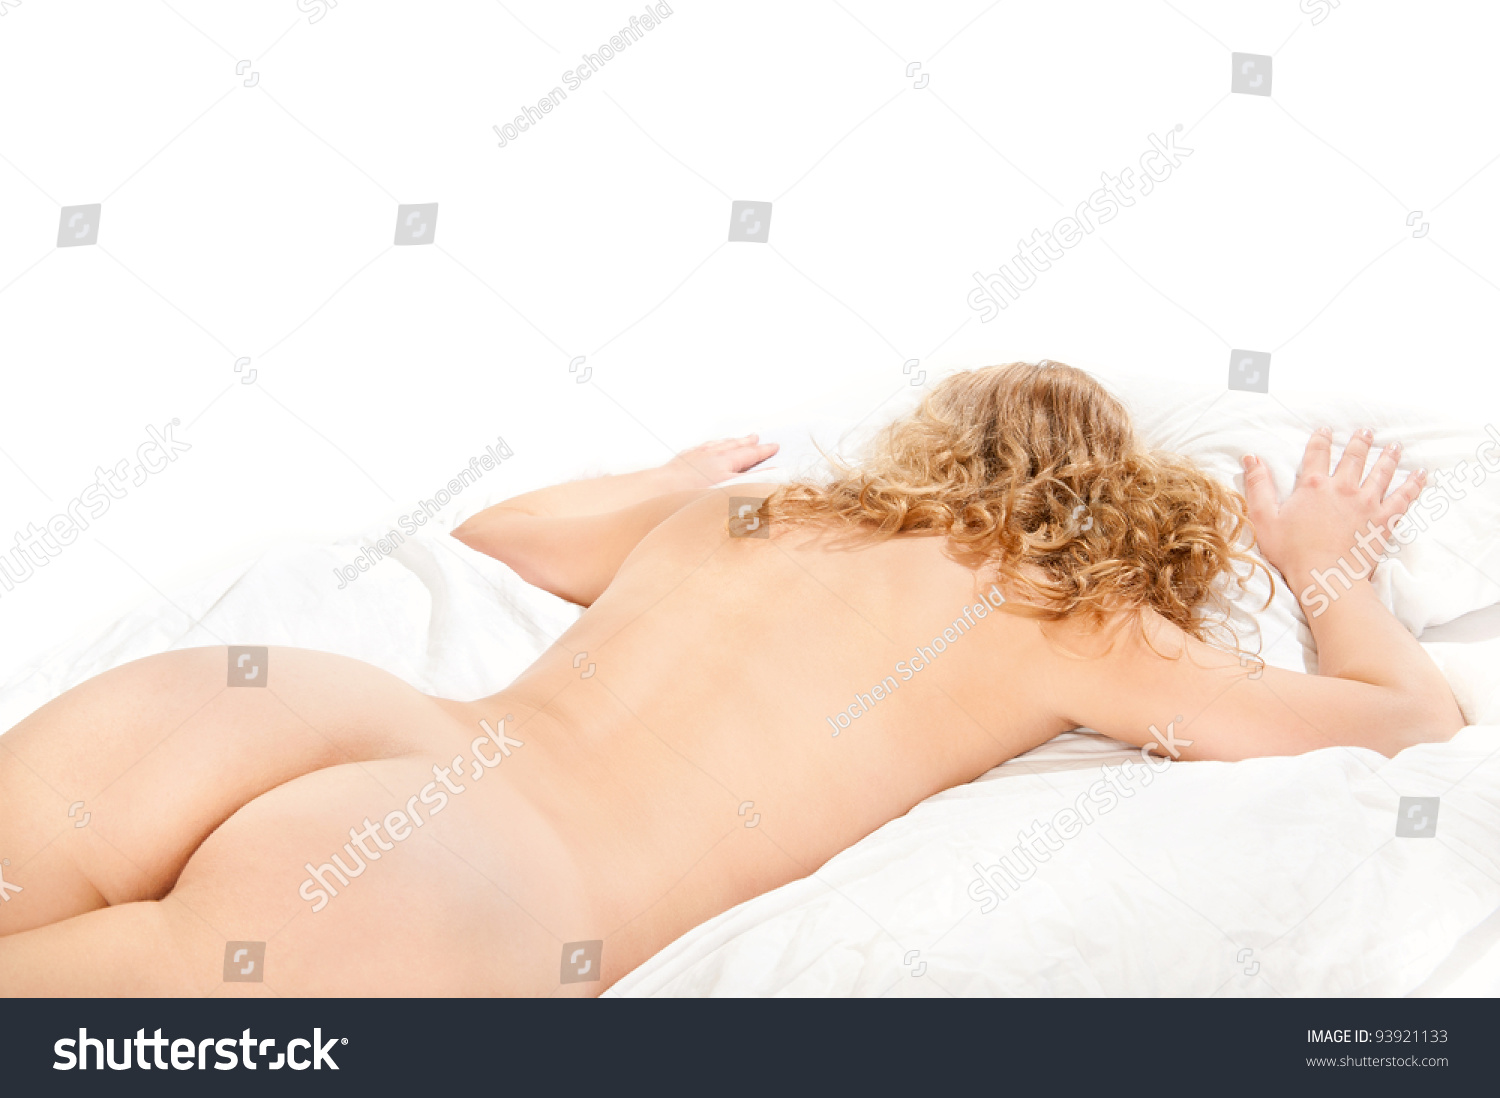 Wife laying naked on bed